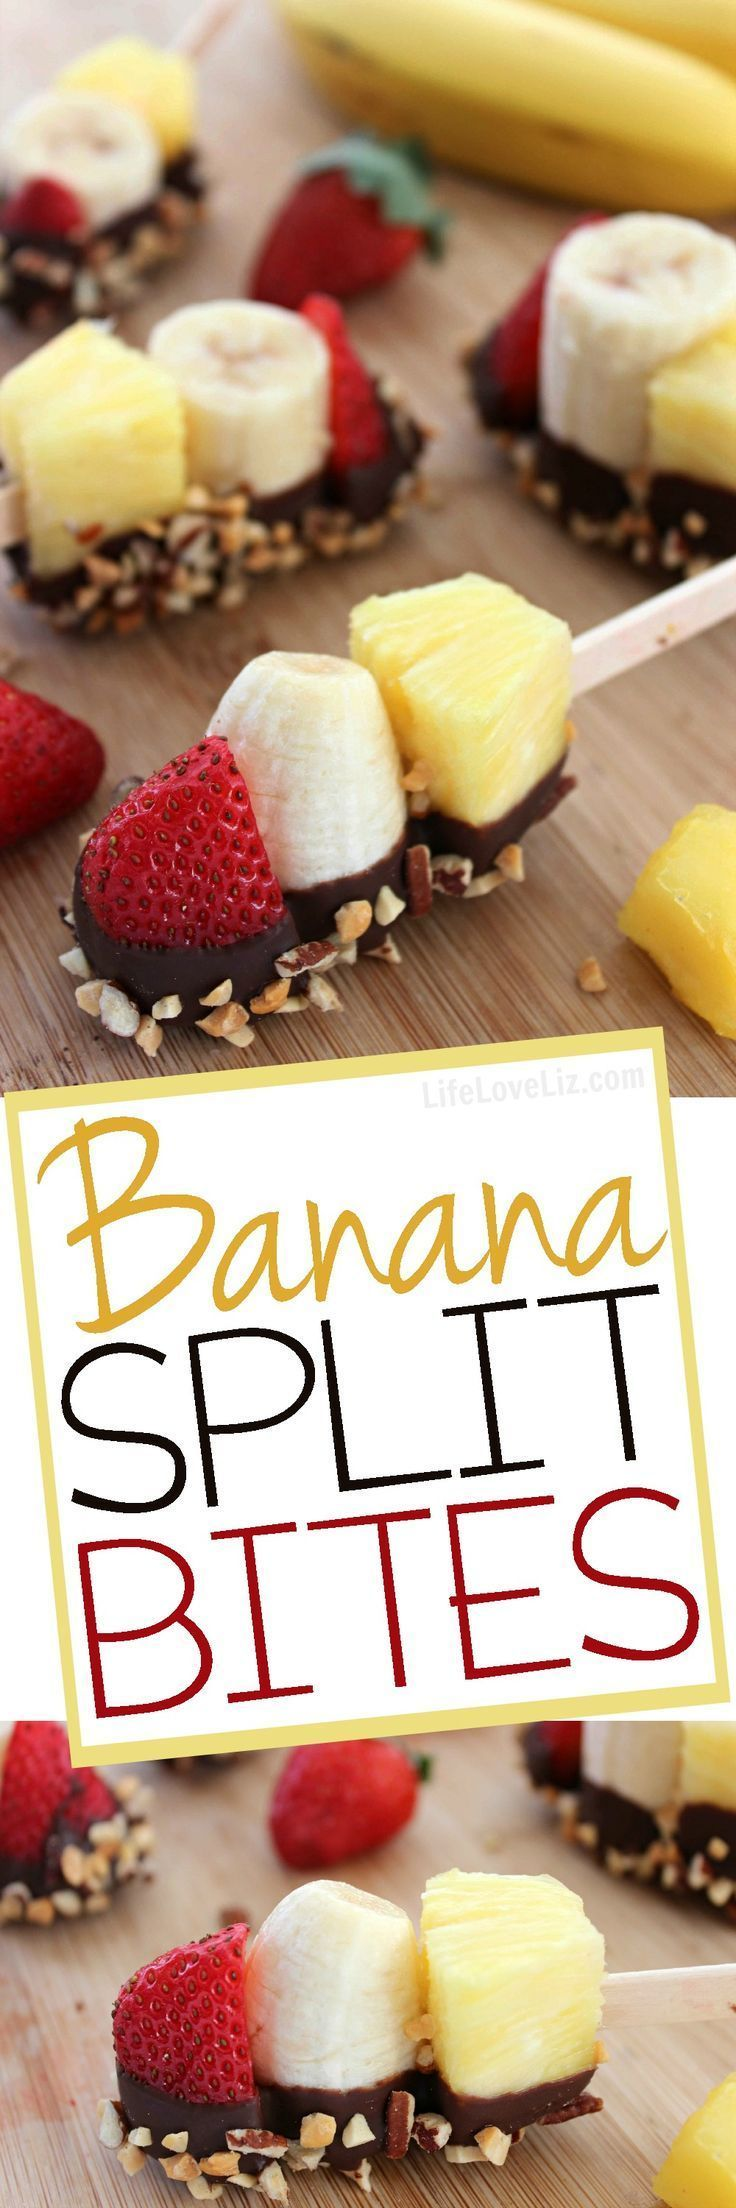 These Banana Split Bites are a healthy dessert or a fun after school snack for kids that is full of fruity flavour! http://www.lifeloveliz.com/2015/05/04/banana-split-bites/